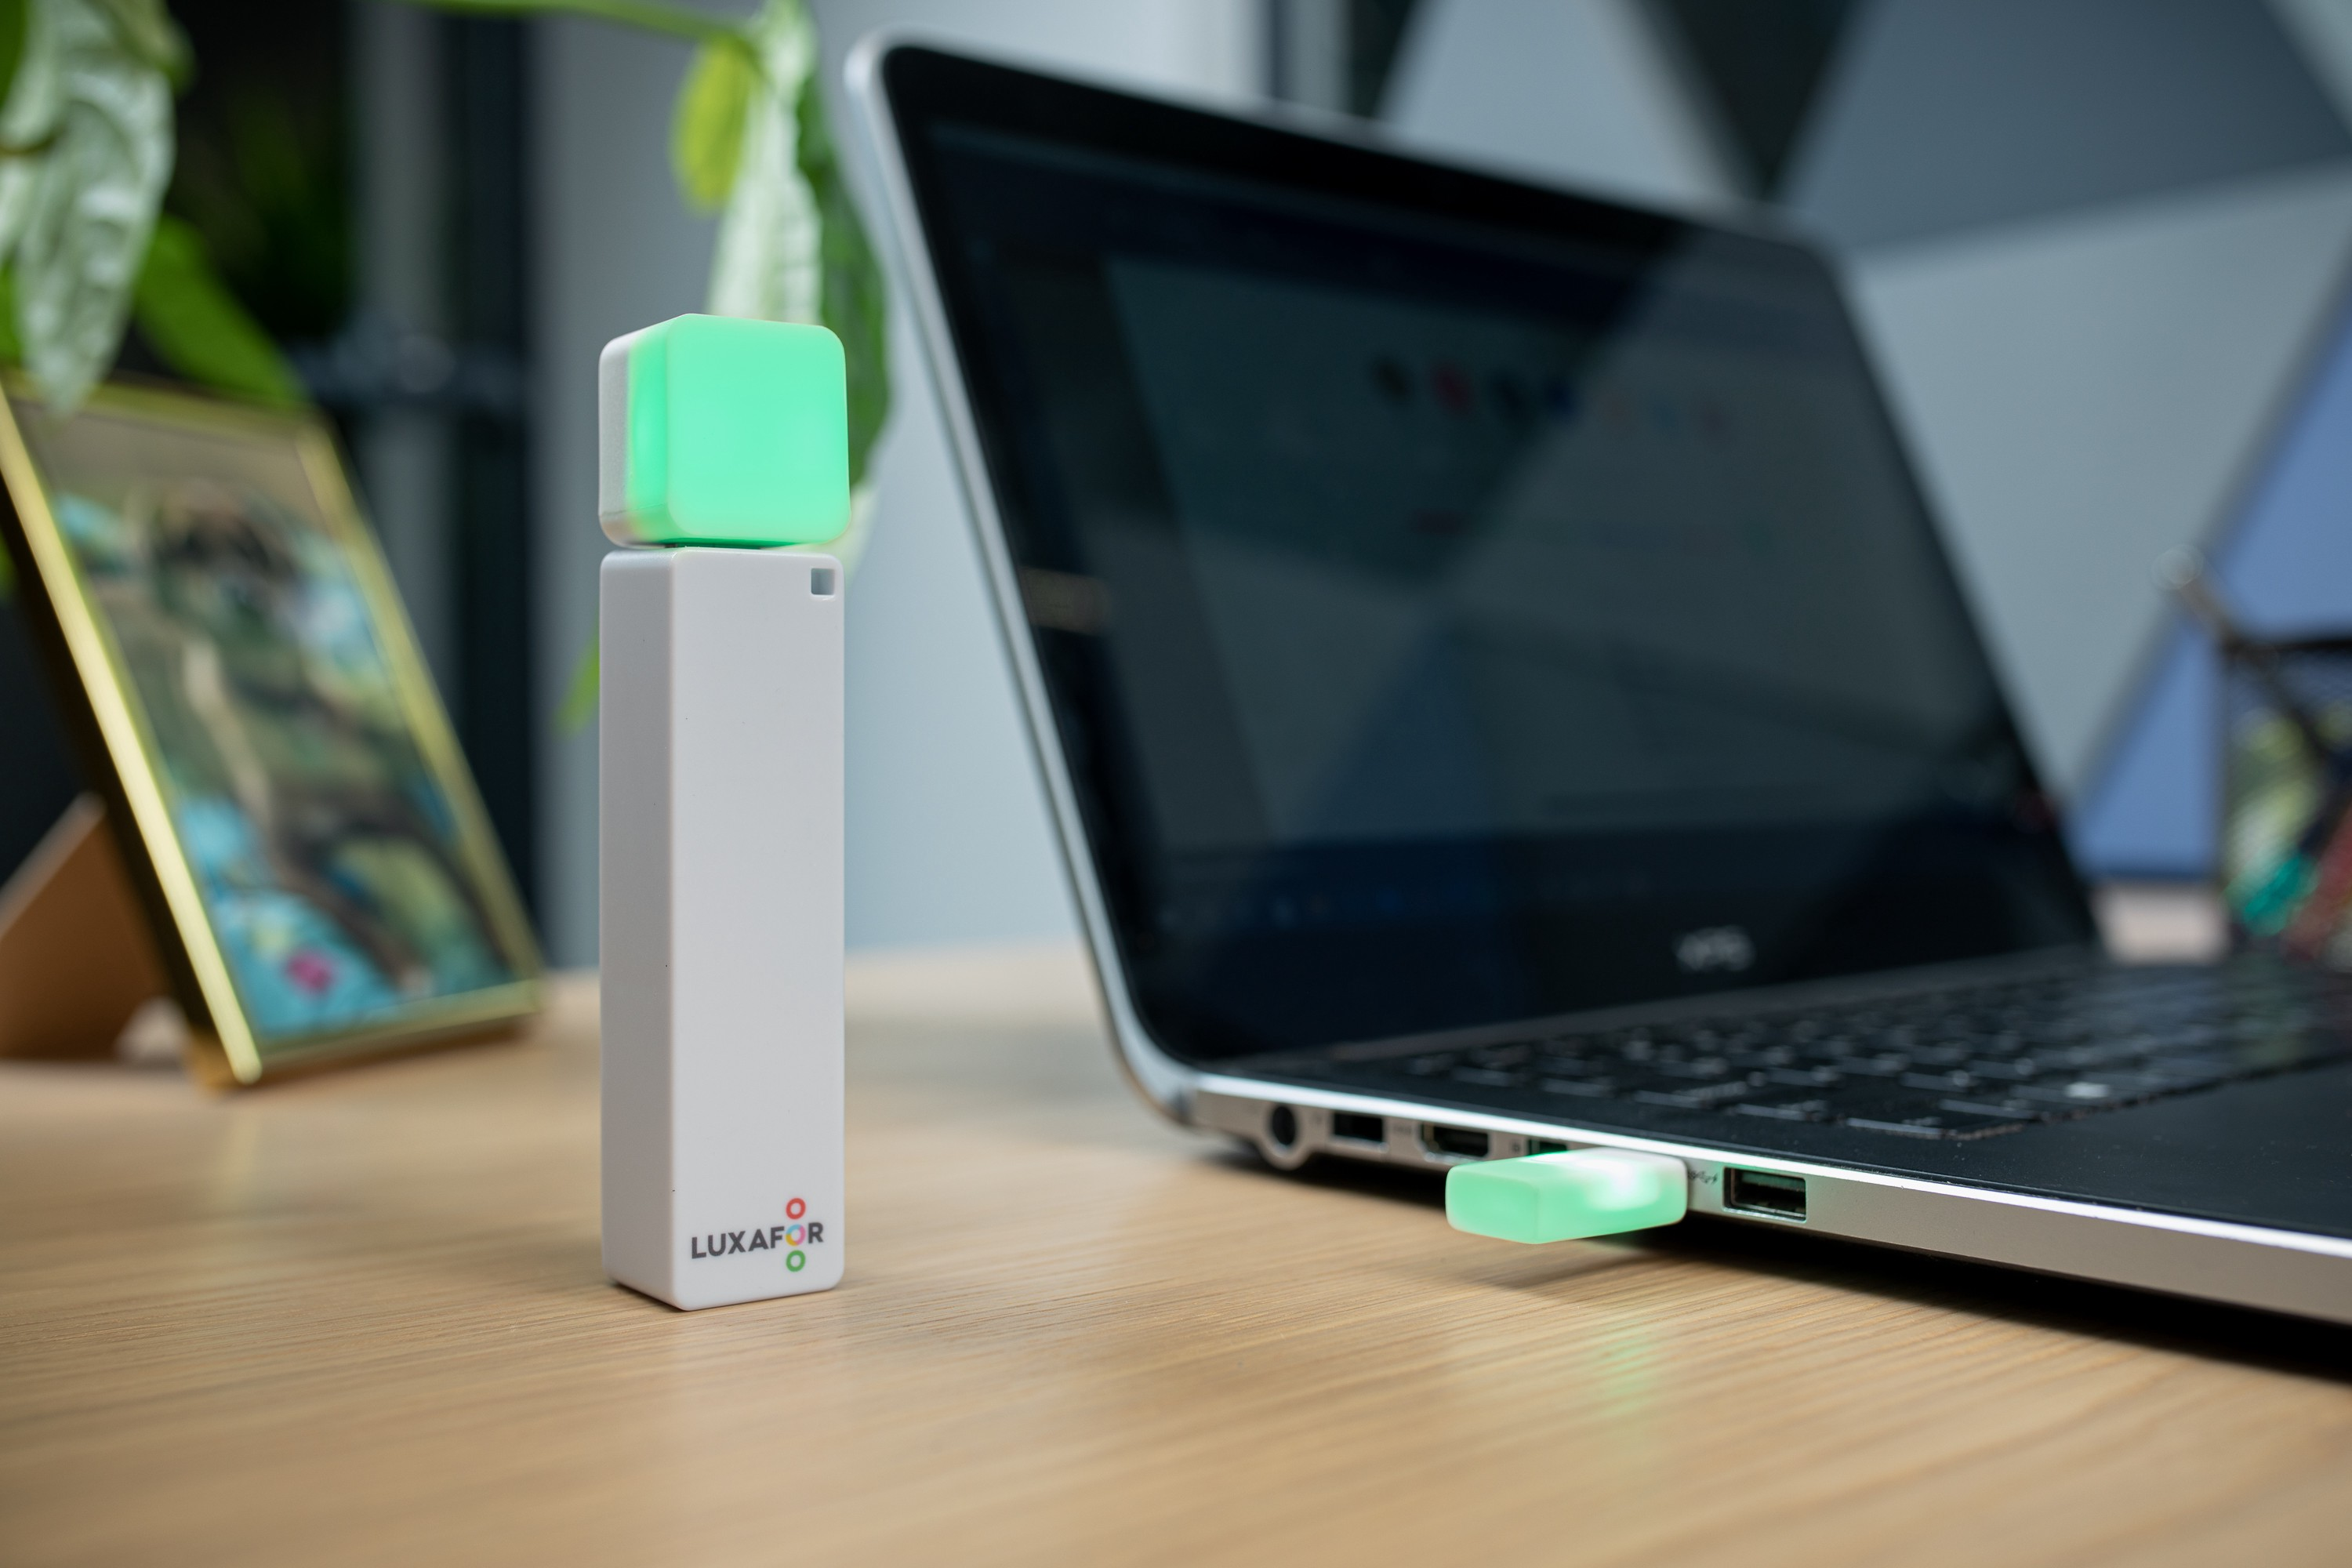 The Luxafor Bluetooth on a light colored desk. The device is connected to a laptop computer and it showing a green light.